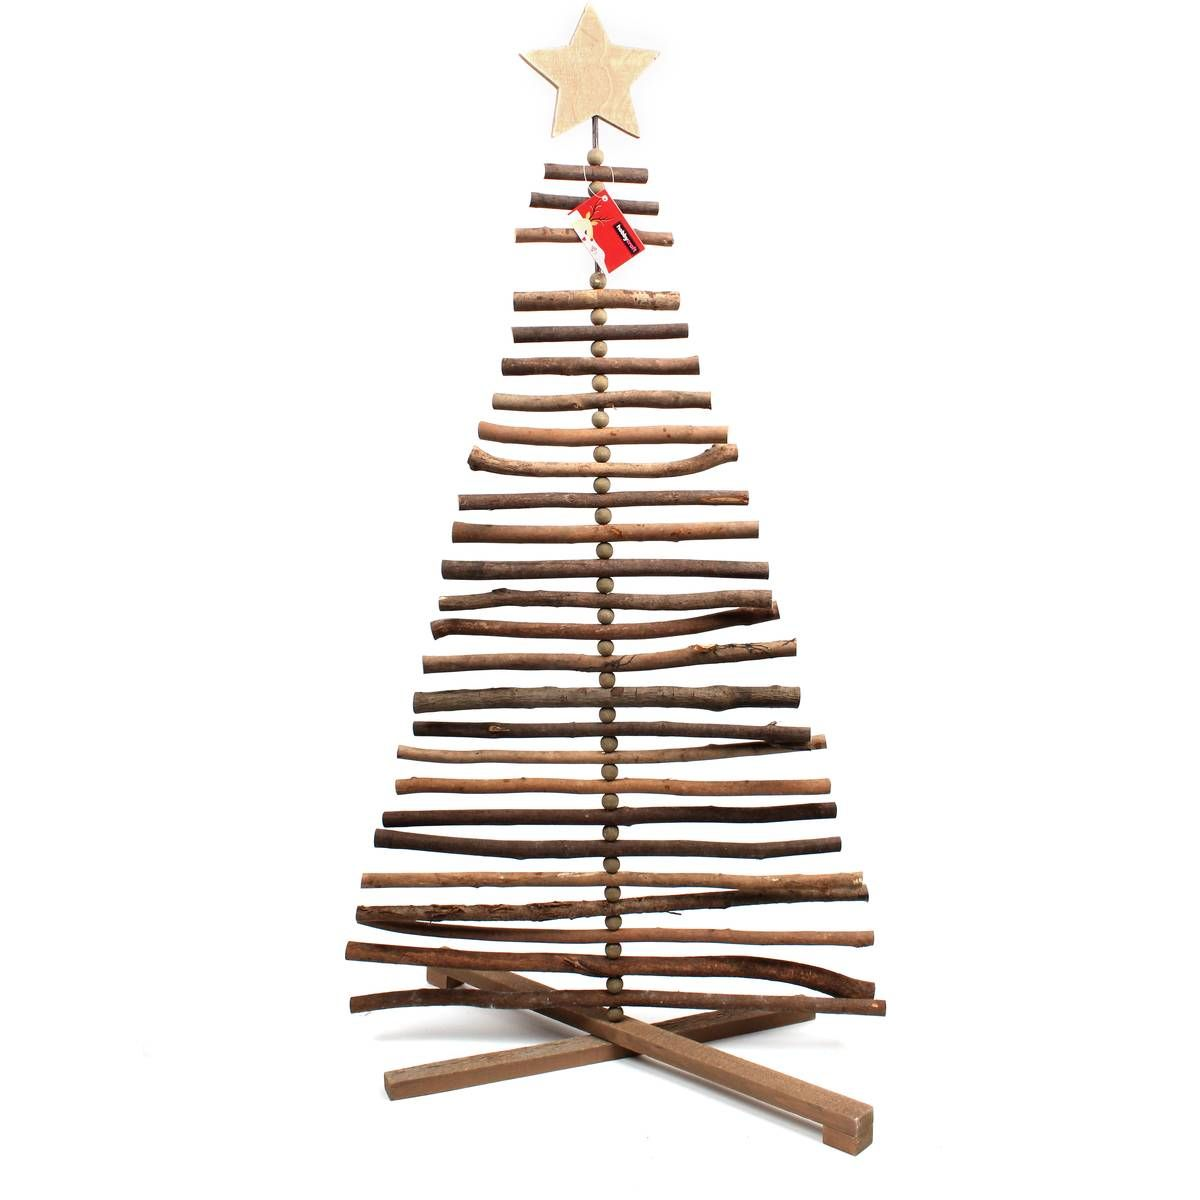 3d Wooden Christmas Tree 90cm Hobbycraft With Images Wooden Christmas Trees Decorating With Christmas Lights Twig Christmas Tree